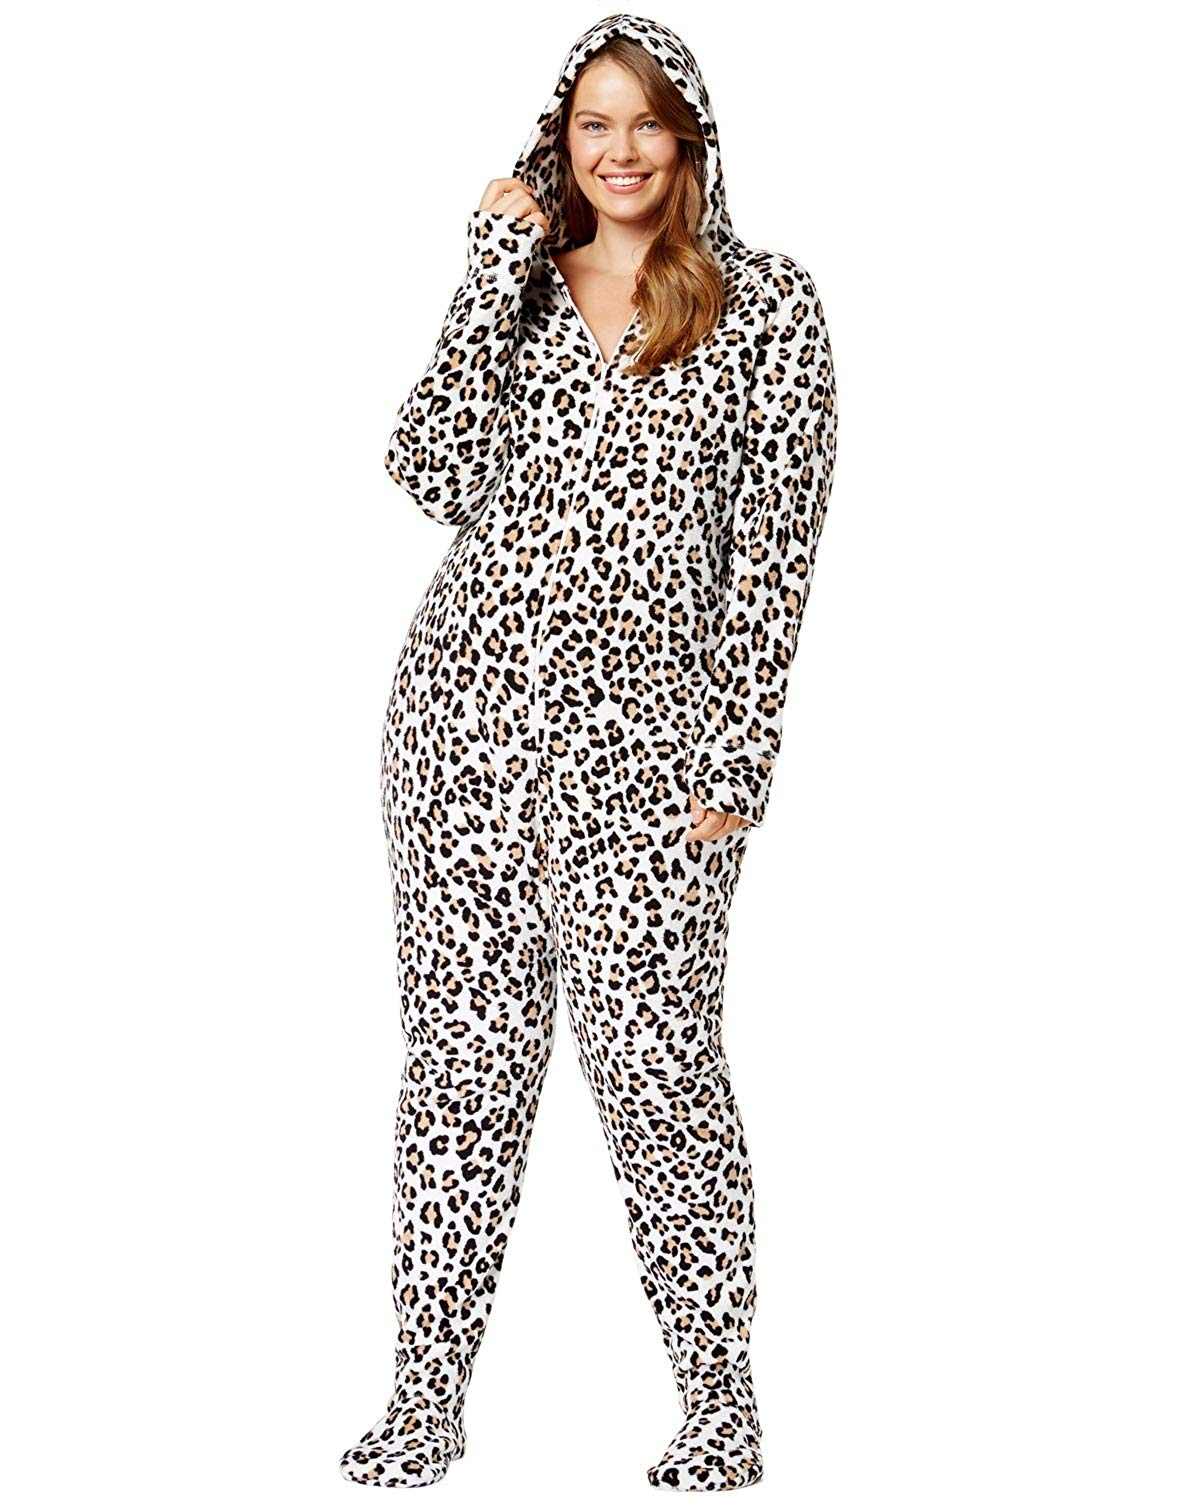 f232d4f541c Jenni by Jennifer Moore Plus Size Hooded Printed Footed Jumpsuit 2X Leopard